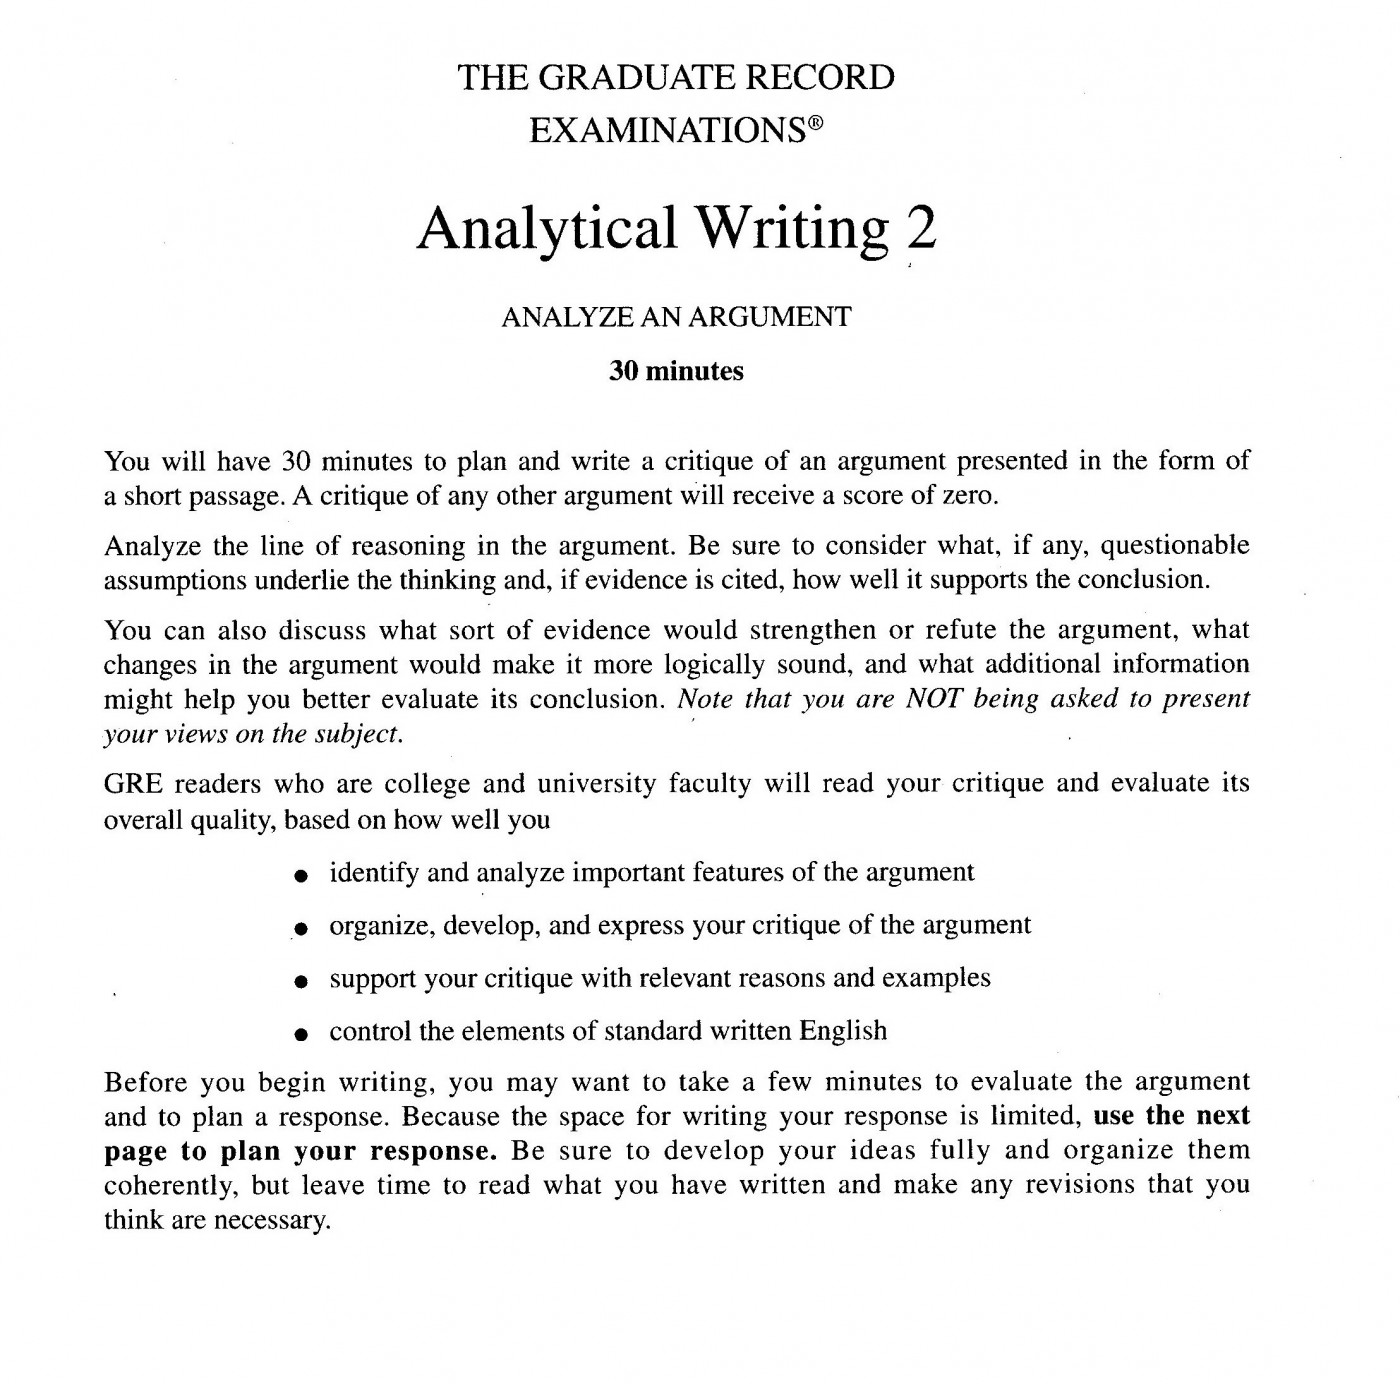 004 Essay Example Gre Argument Write Analysis Evaluation Examples T Writing Awa To Use Pdf Good Score Issue Ets Remarkable Topics Analytical Grader Pool Solutions 1400